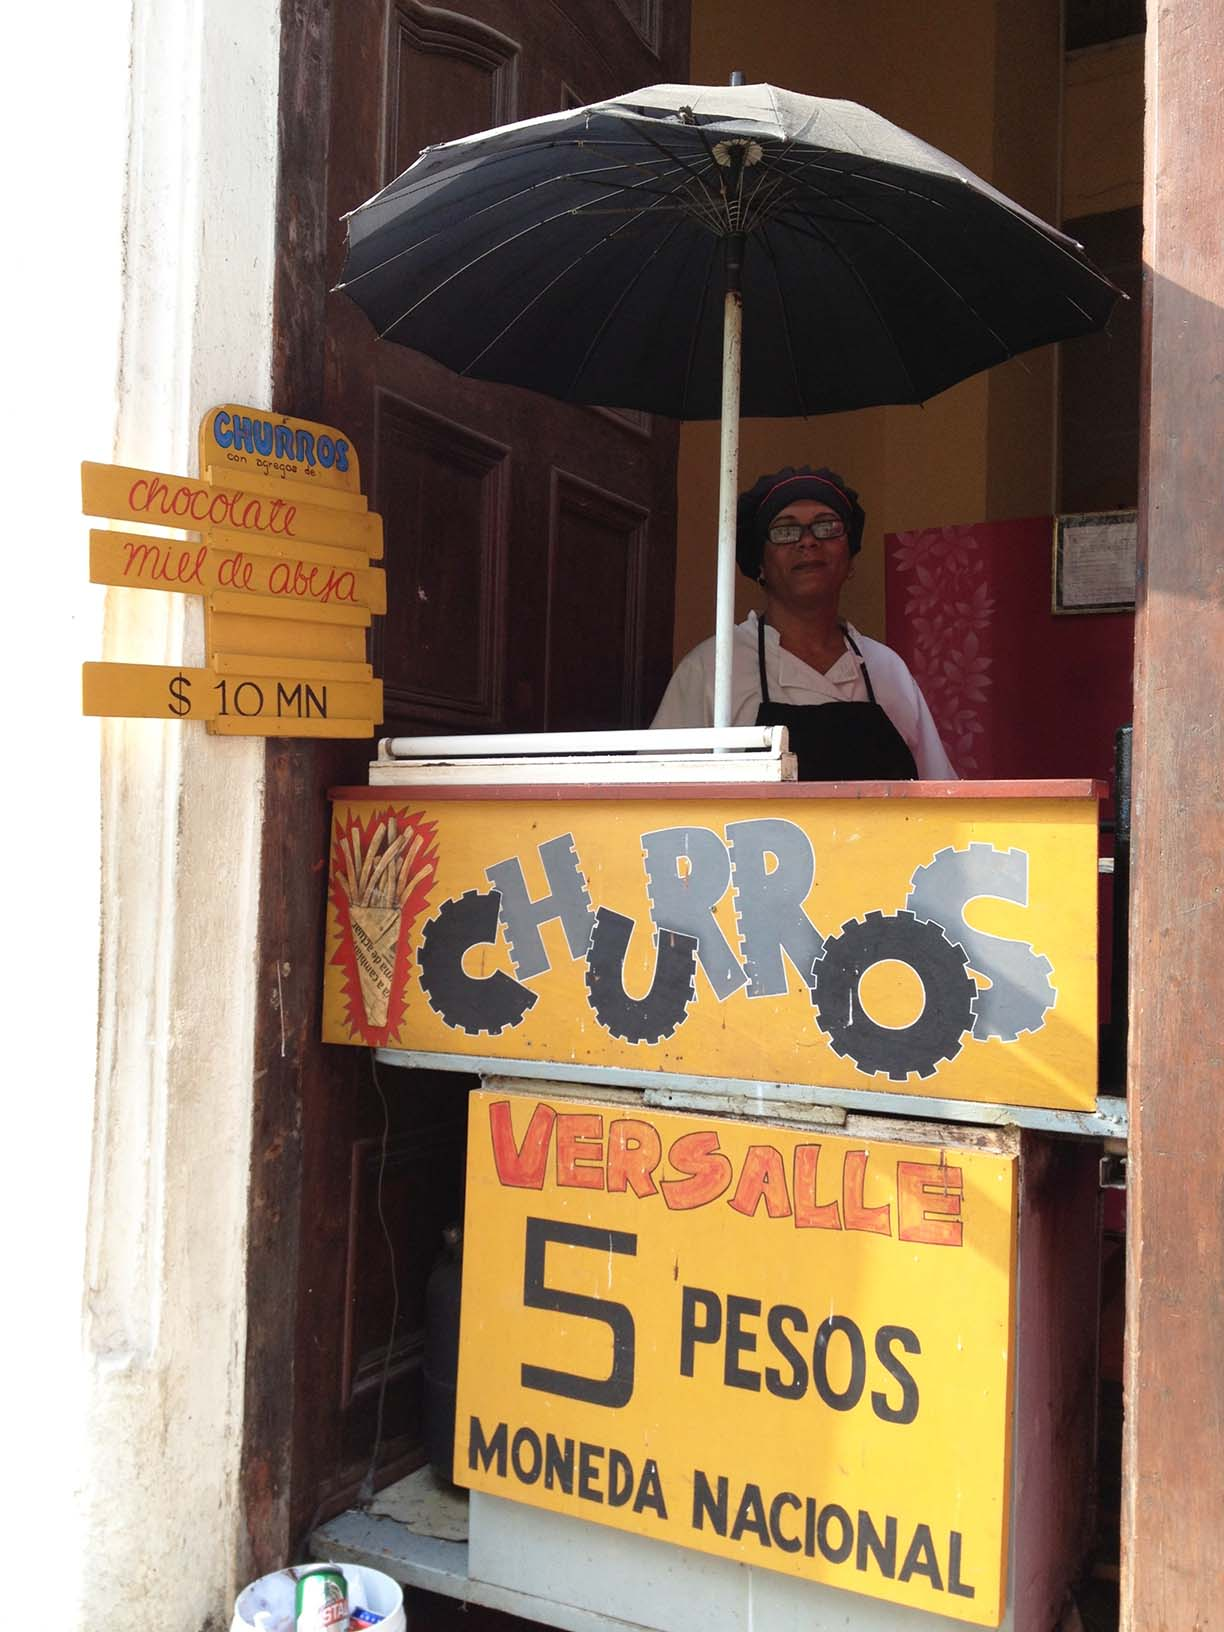 Whether it's taxi cabs, churros or salsa lessons, entrepreneurship seems to have sprouted everywhere in Cuba. But U-M anthropology professor Ruth Behar fears many are being left out of the new emerging Cuban economy. Images courtesy: Ruth Behar